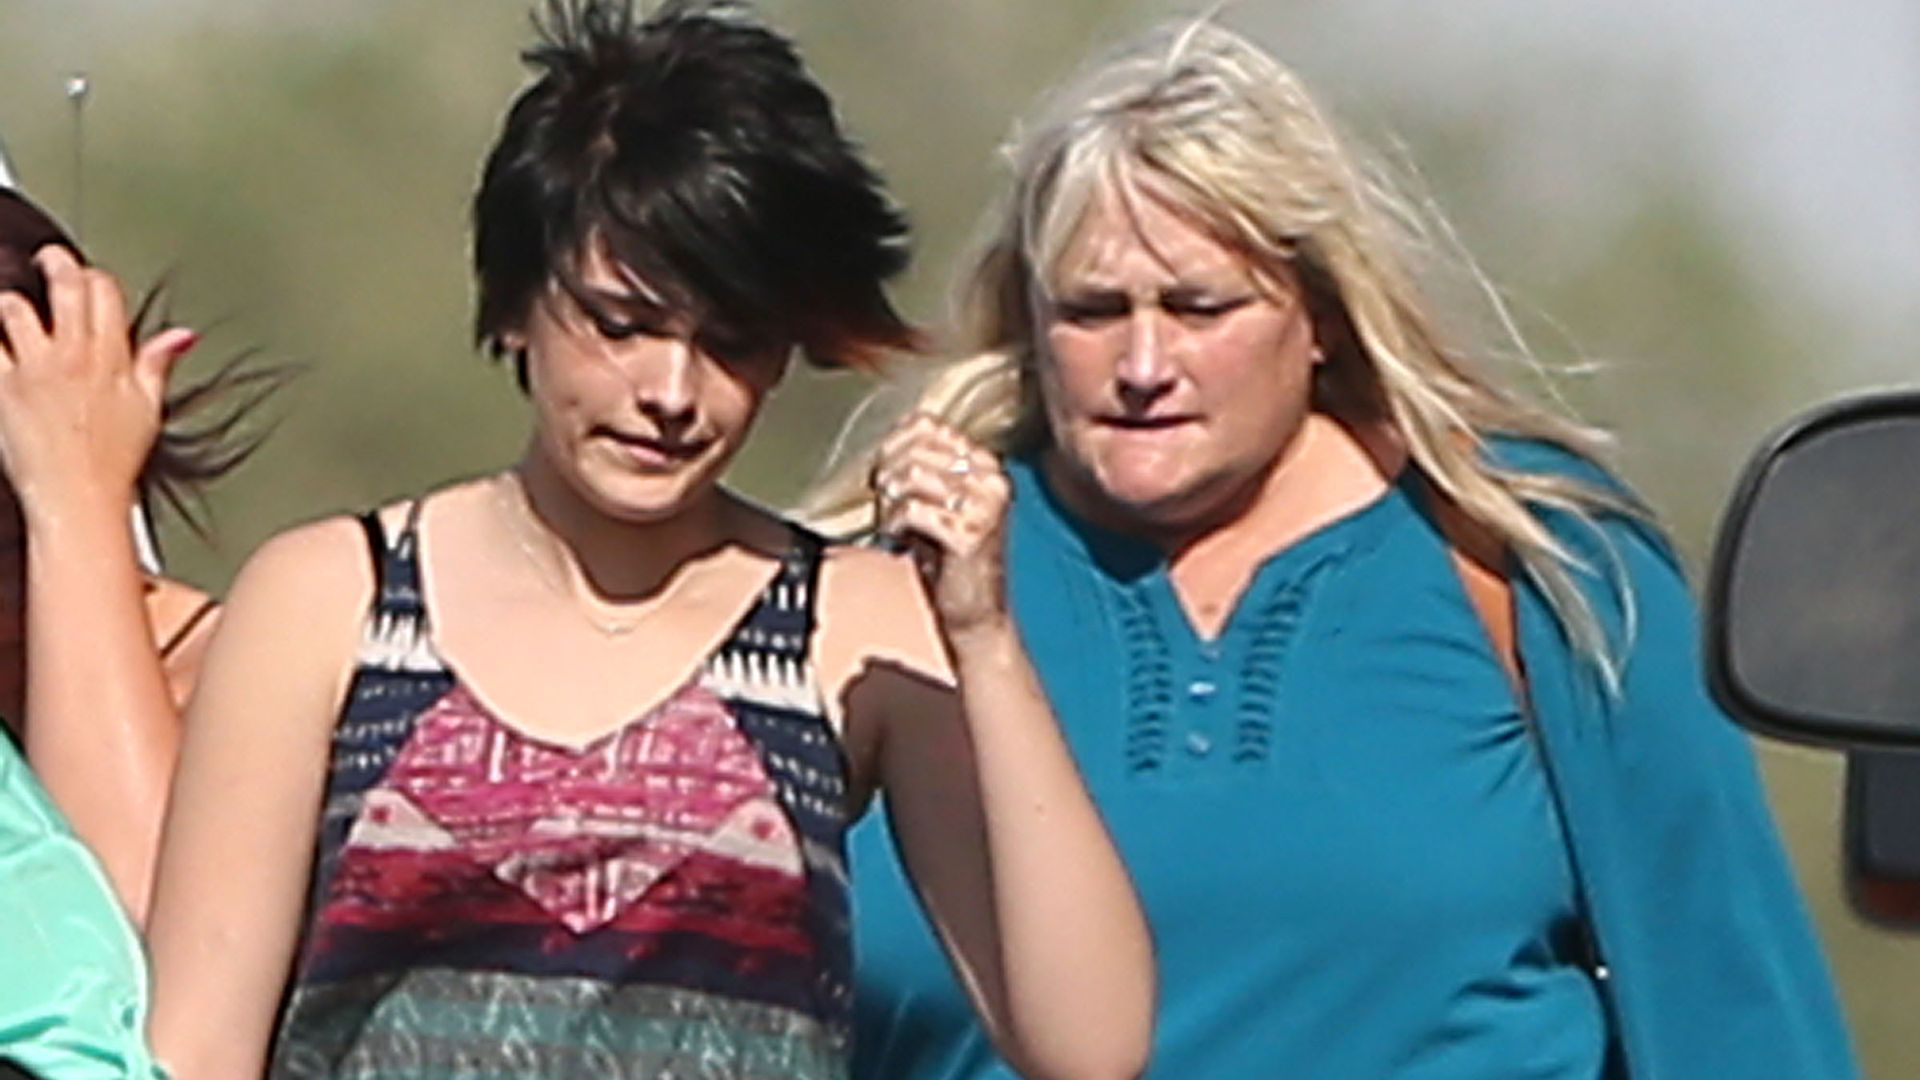 Wegen krebskranker mutter will paris jackson nun heiraten for Barbara karlich neuer freund